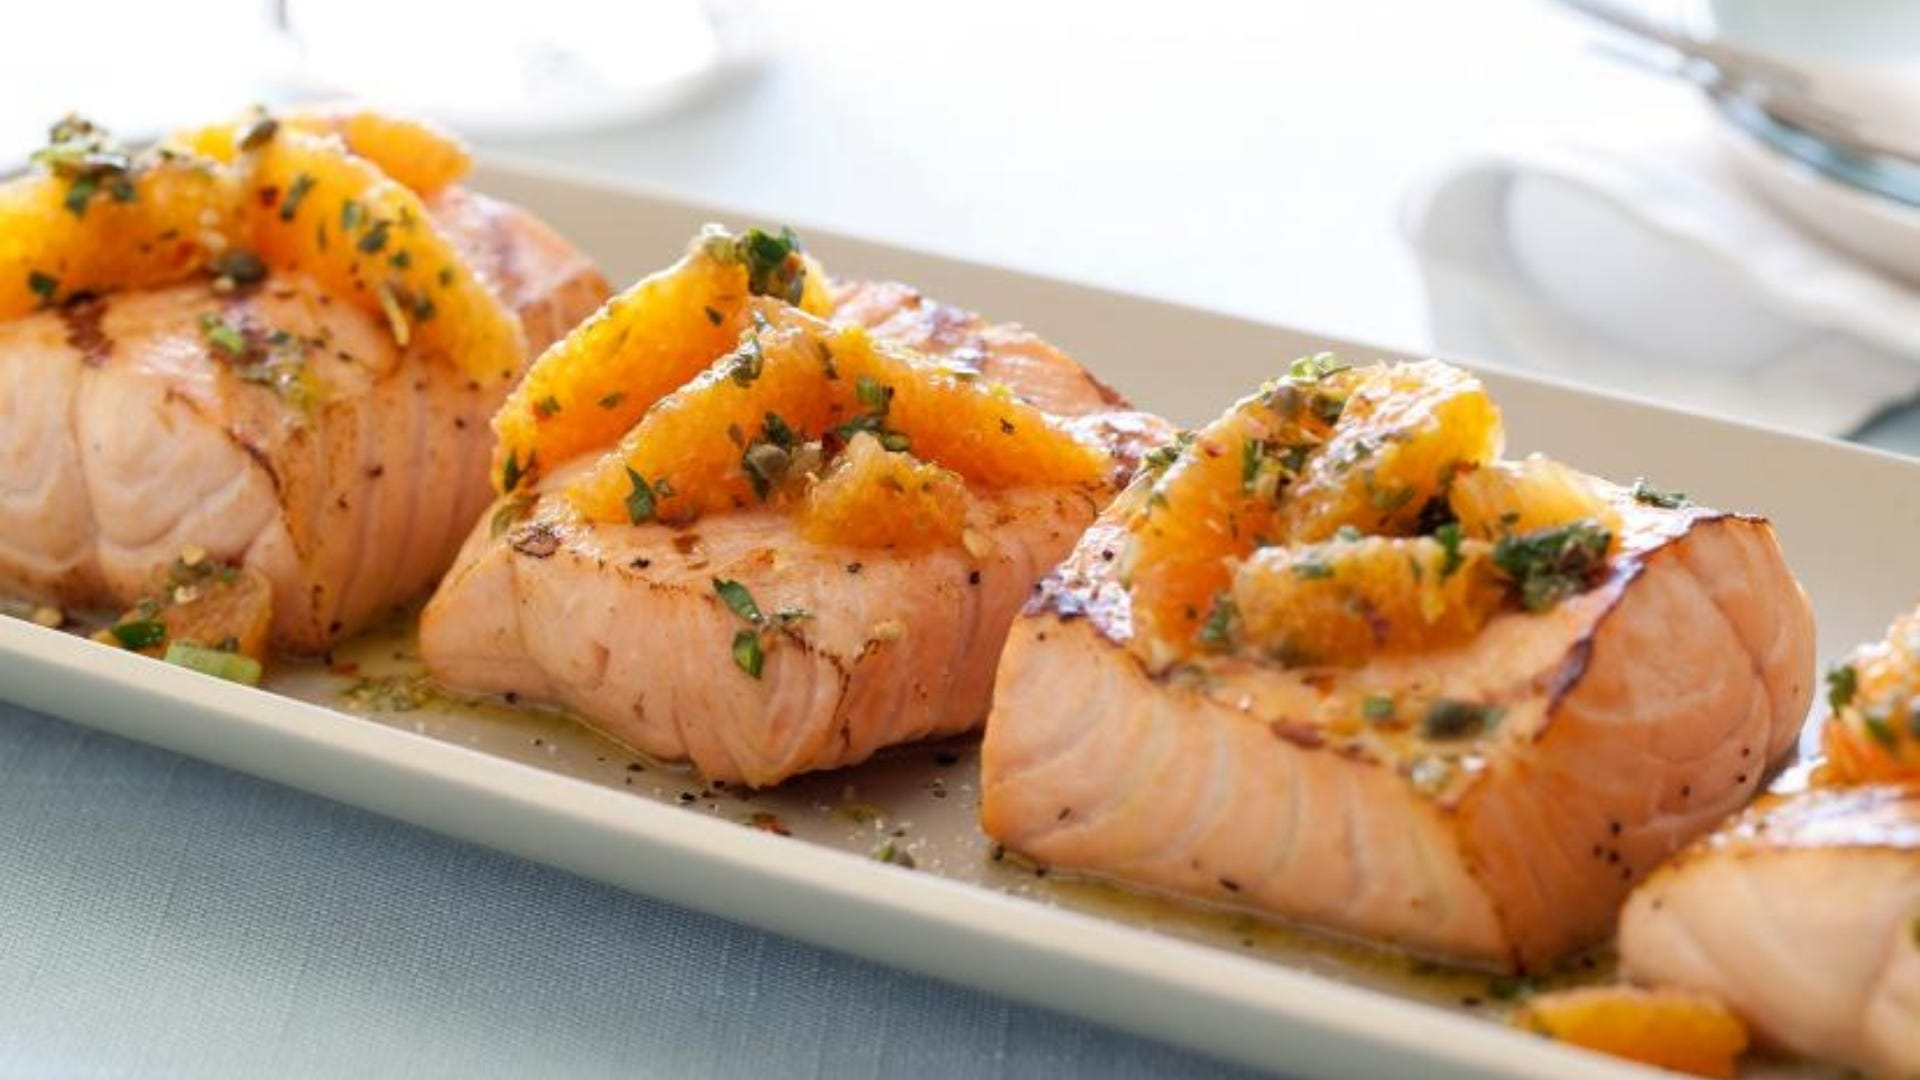 Salmon with citrus salsa on top